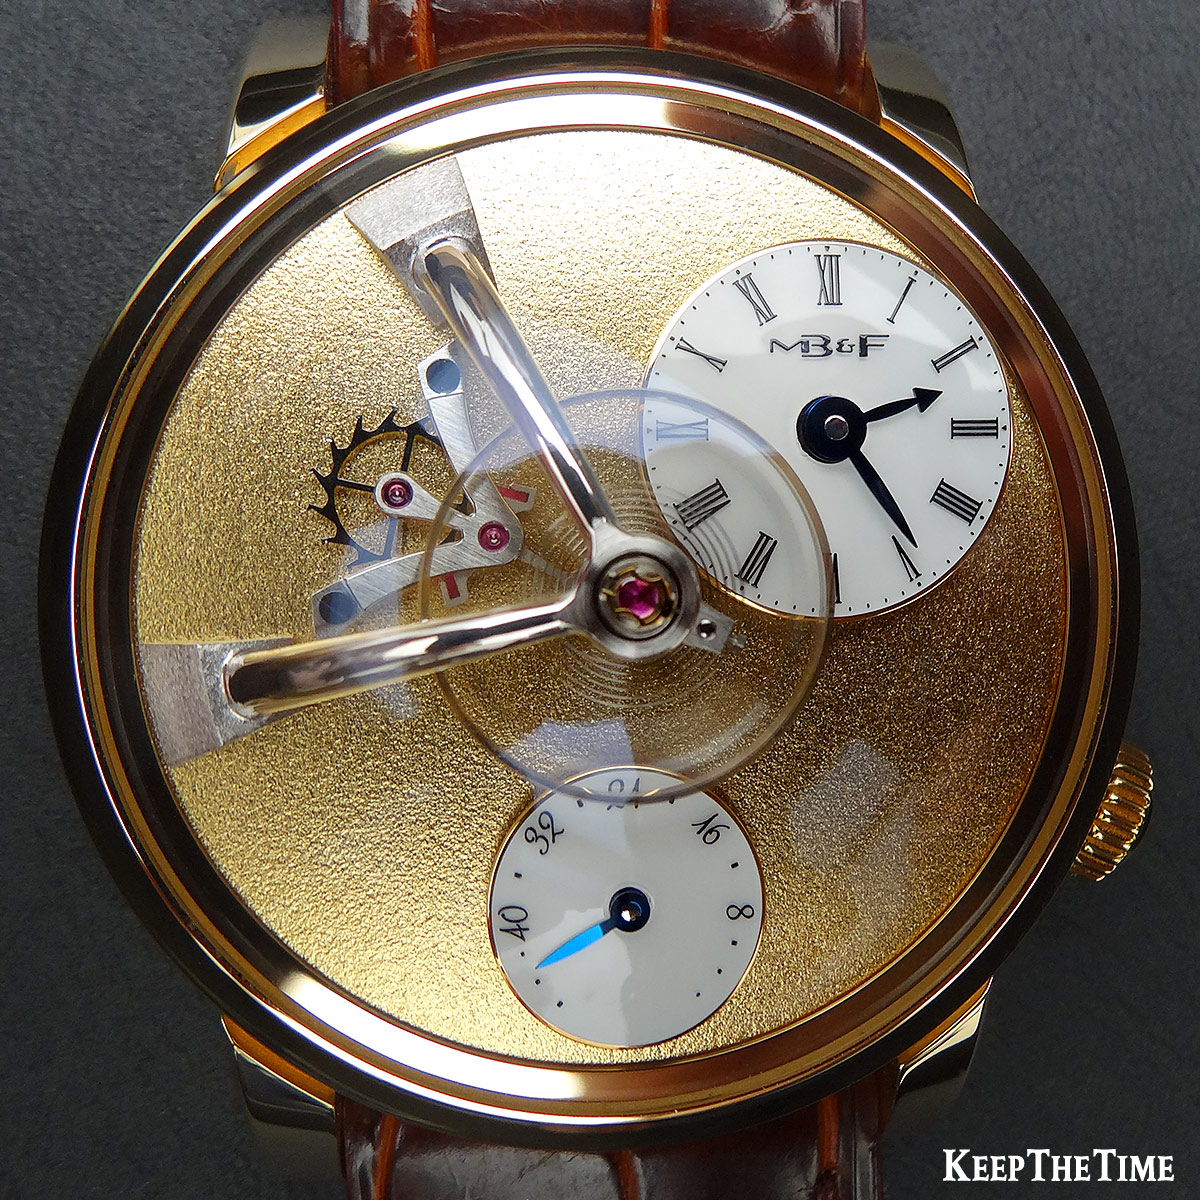 Mbandf Lm101 Frost Gold Watch